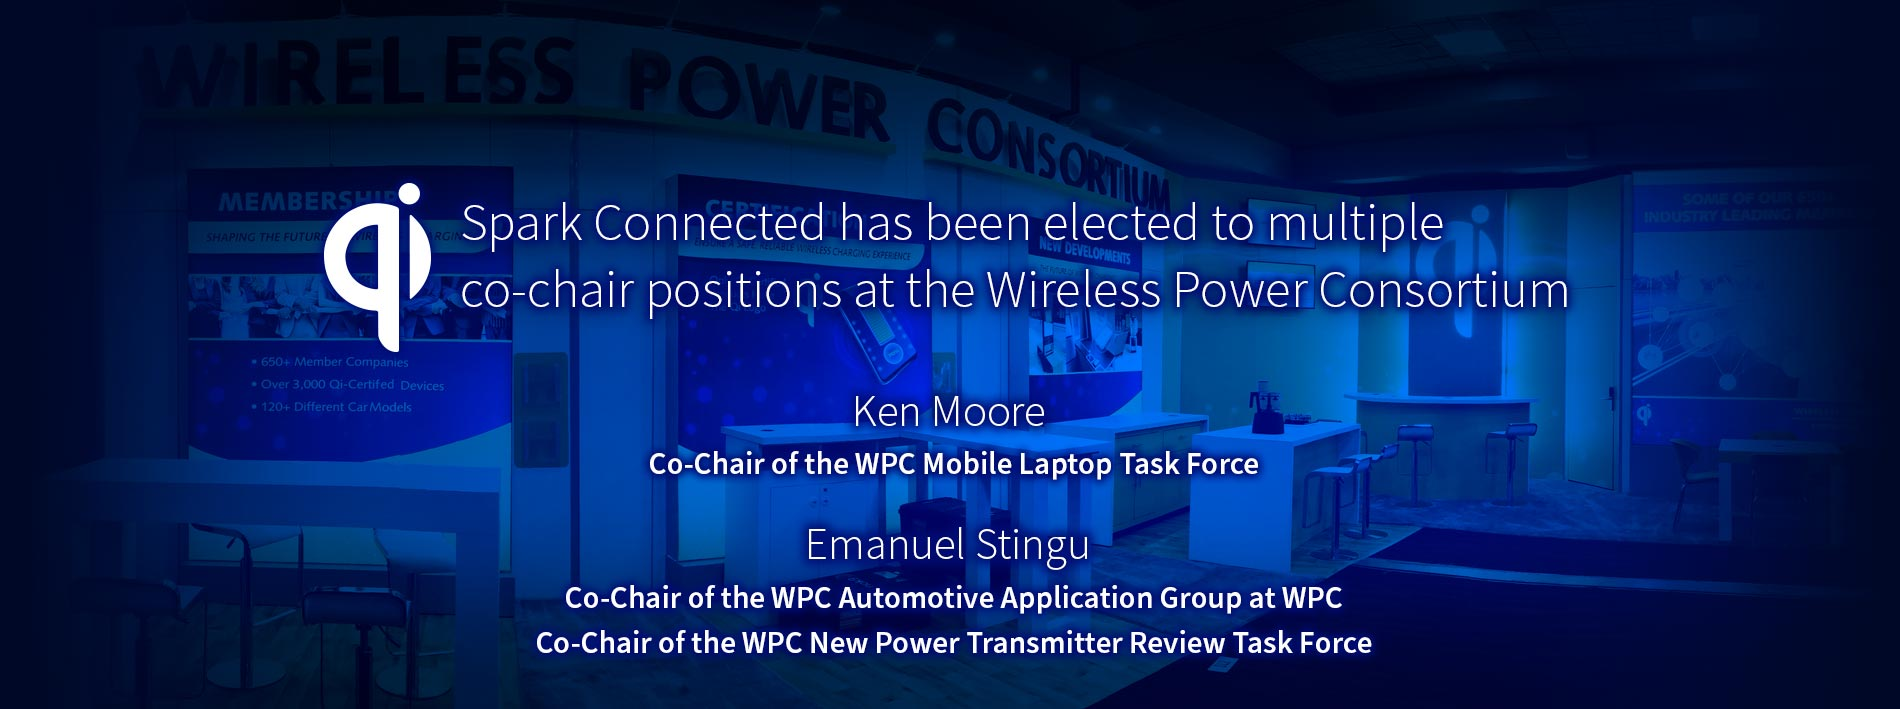 Spark Connected awarded co-chair positions at the Wireless Power Consortium.